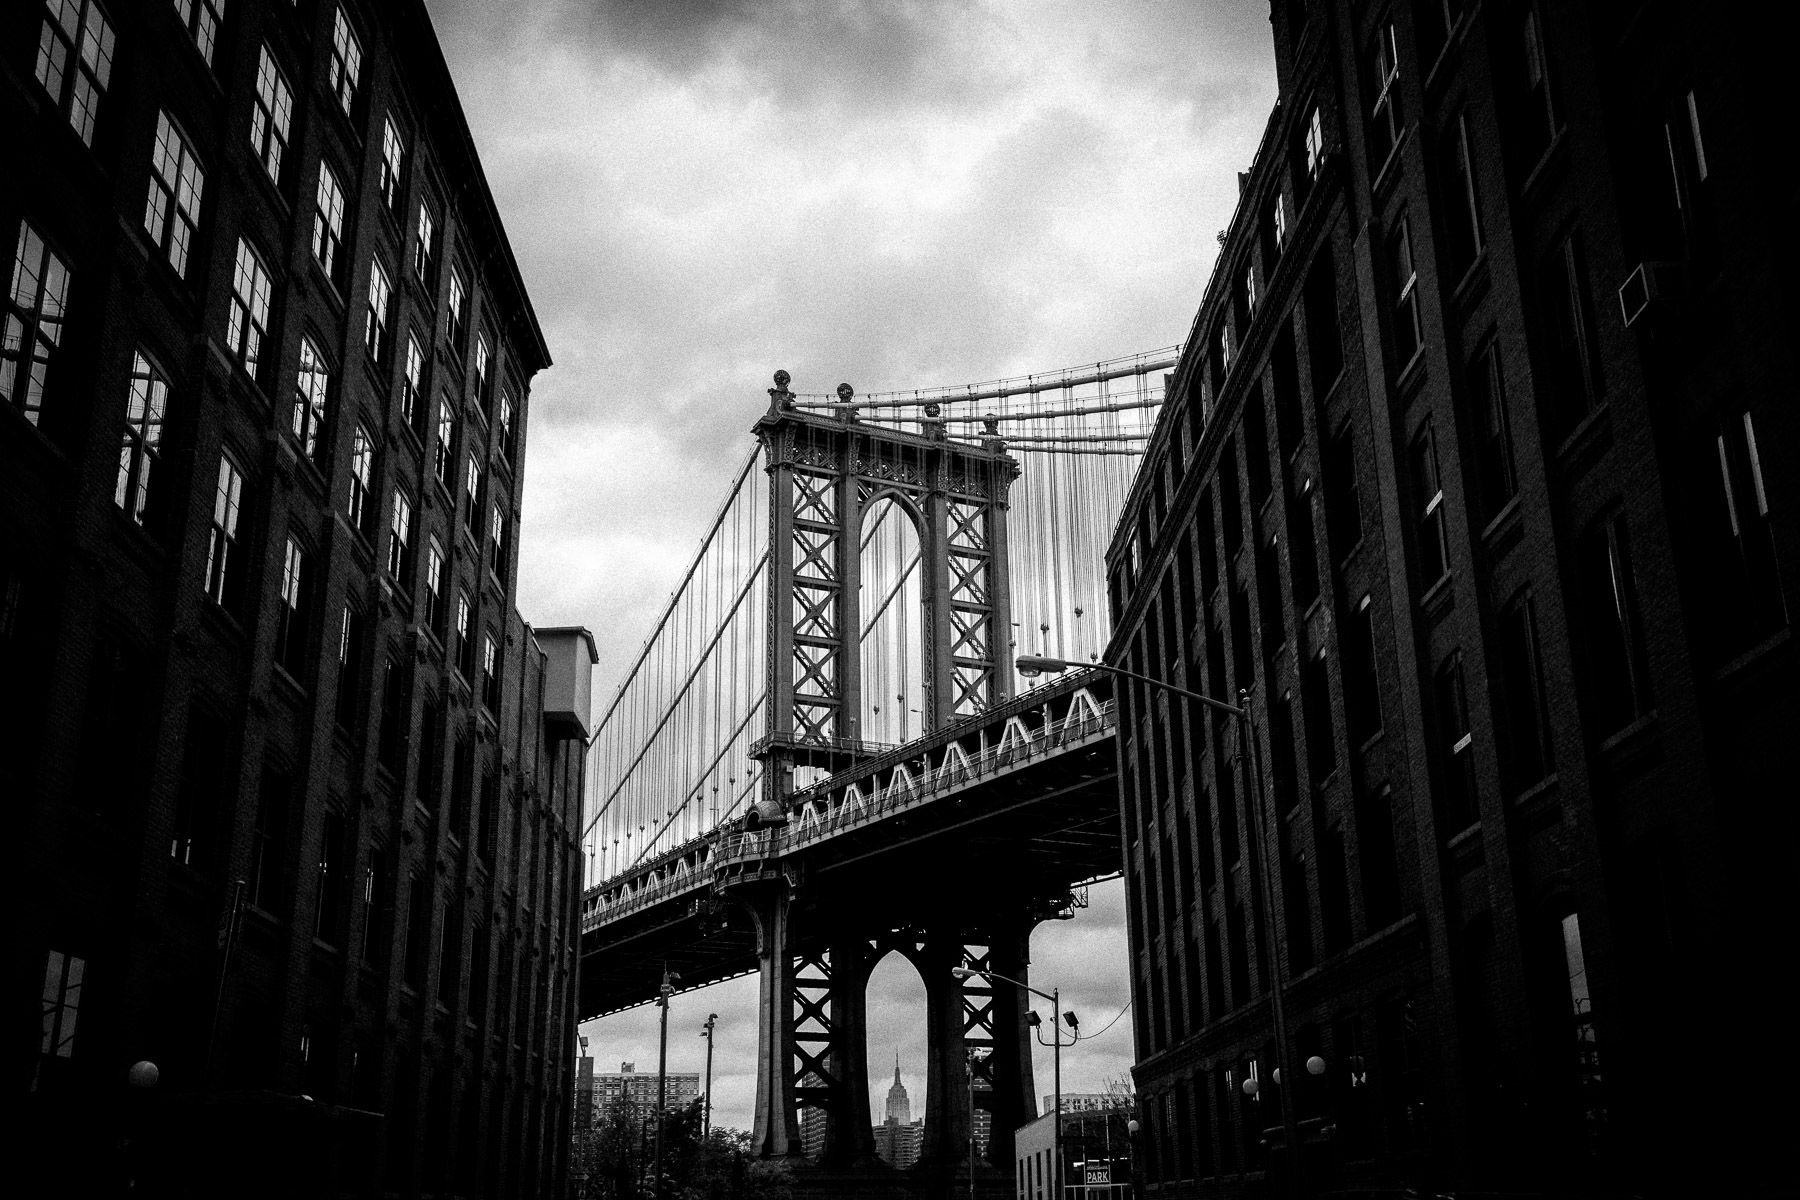 brooklyn-bridge-with-empire-state-building-photo-bw-2.jpg